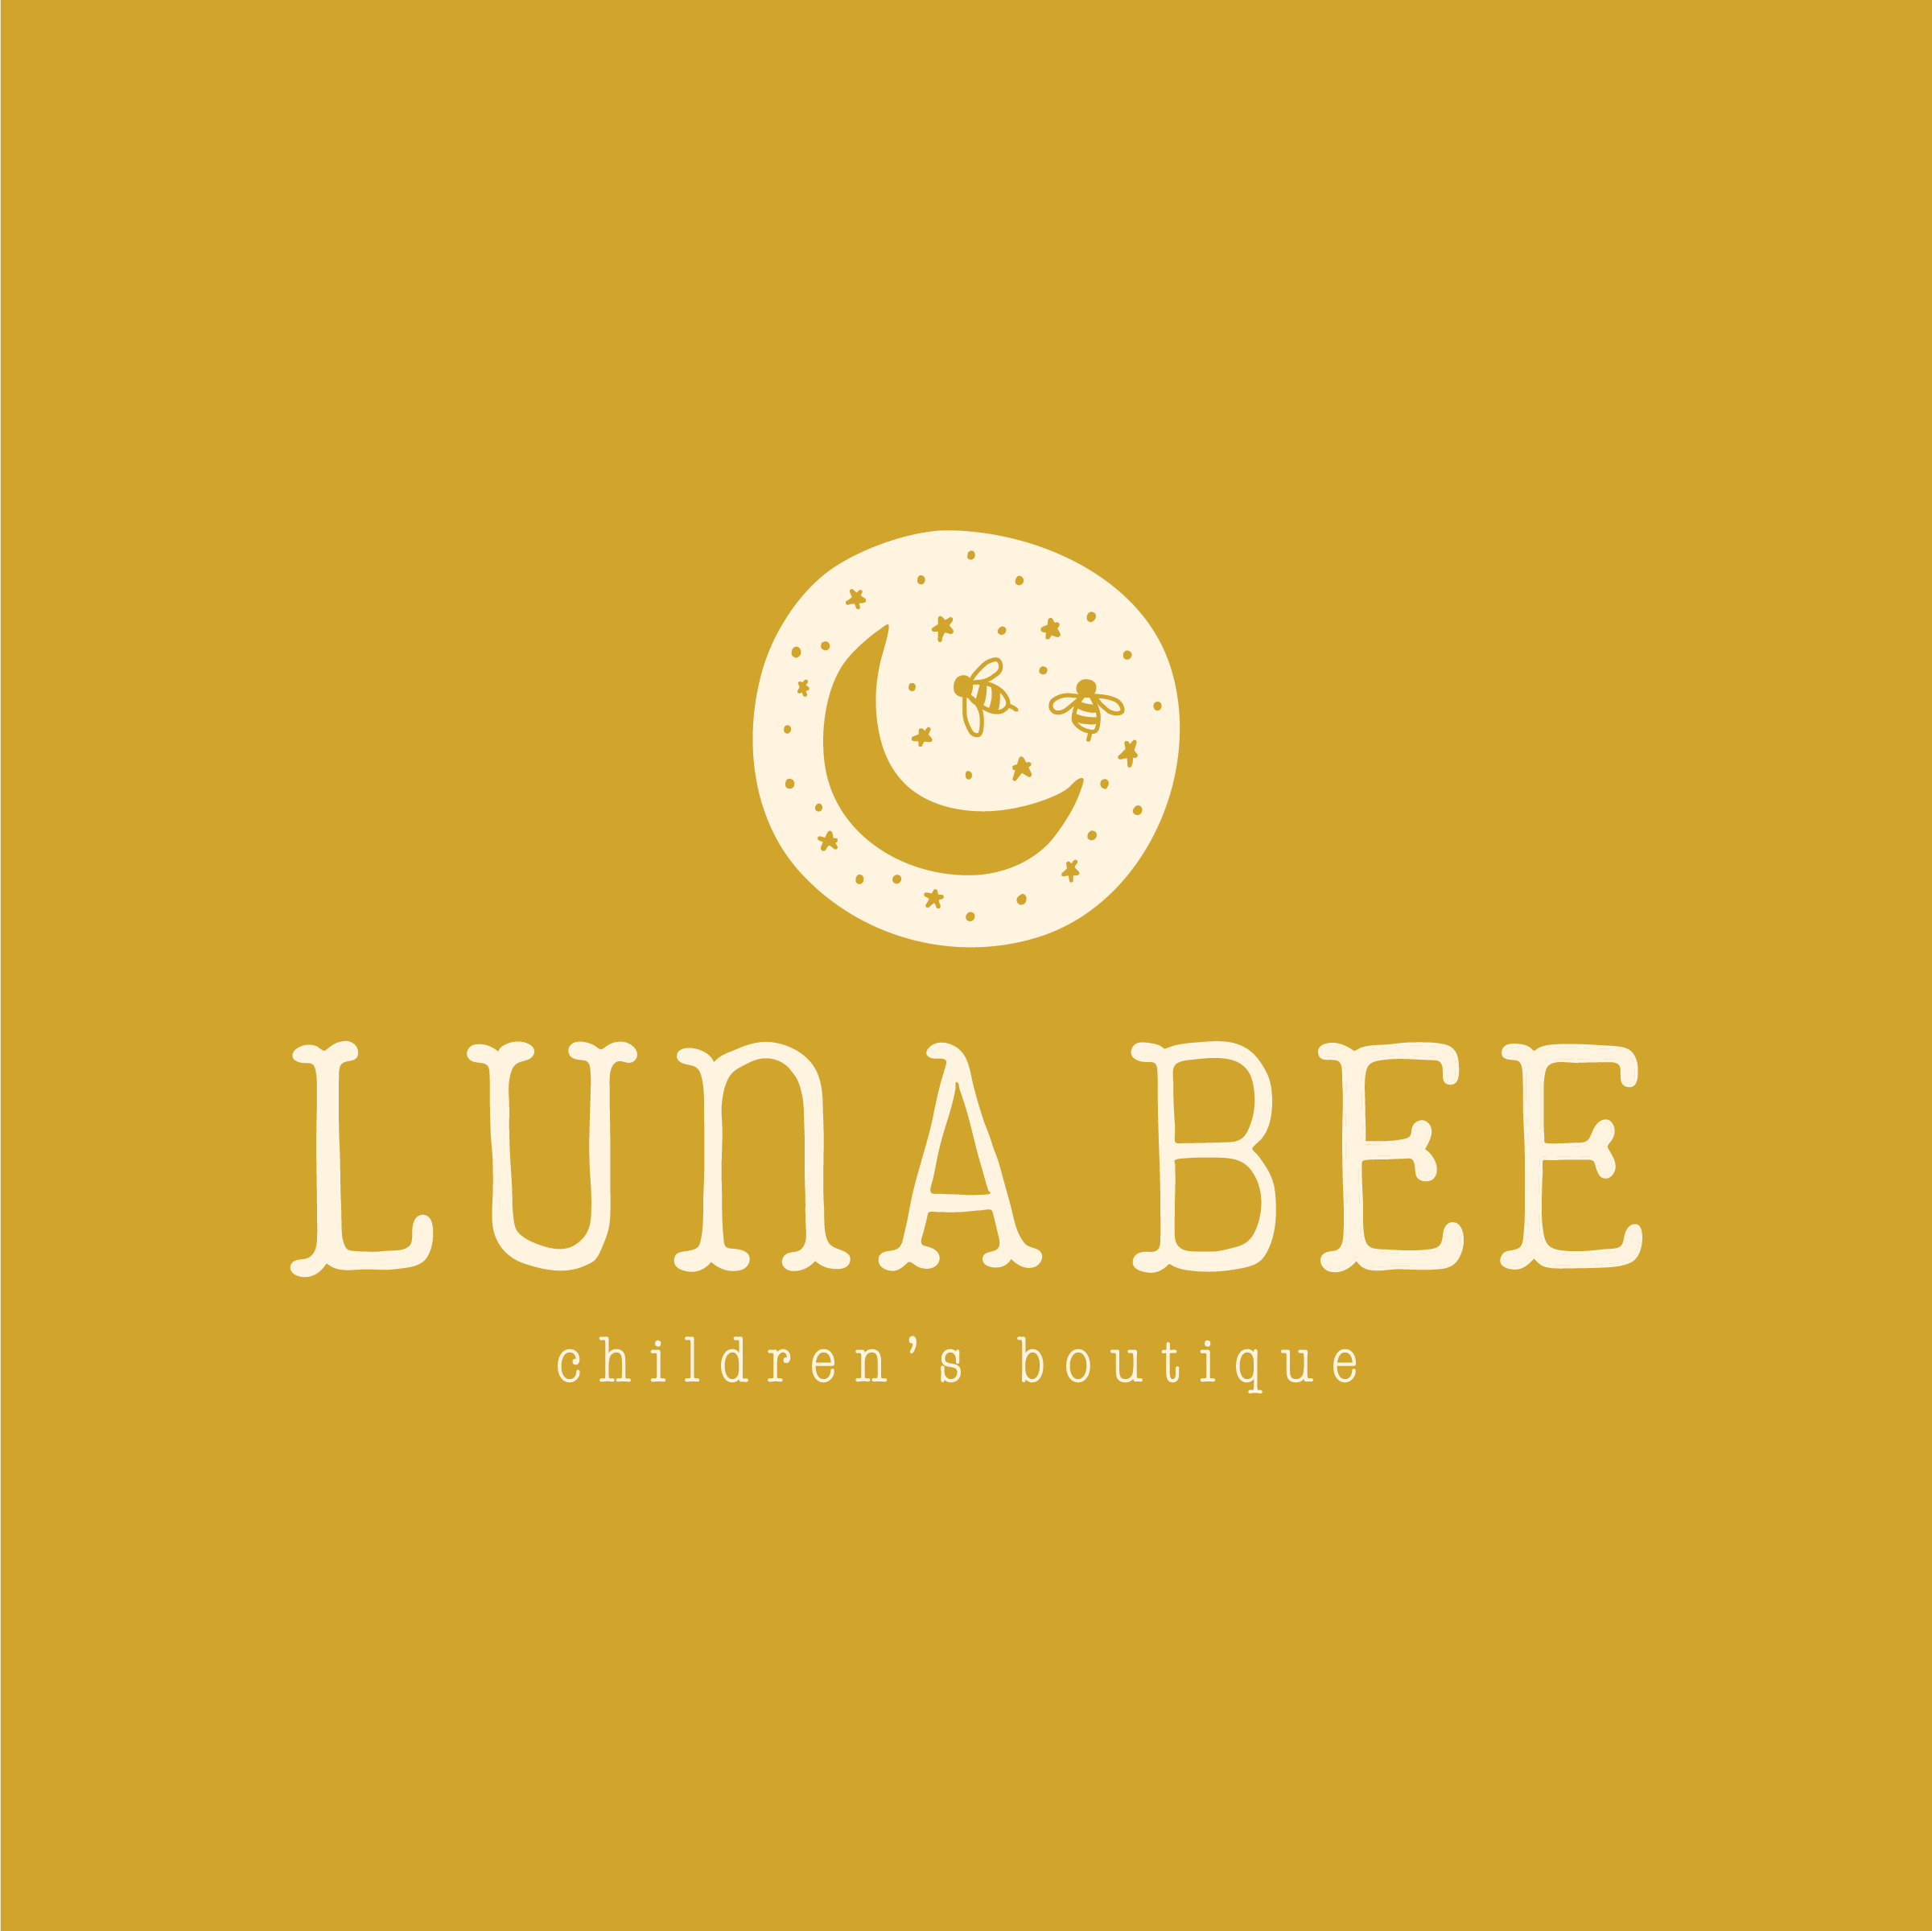 Luna Bee Children's Boutique brand design by Pace Creative Design Studio | Color Diaries: Yellow